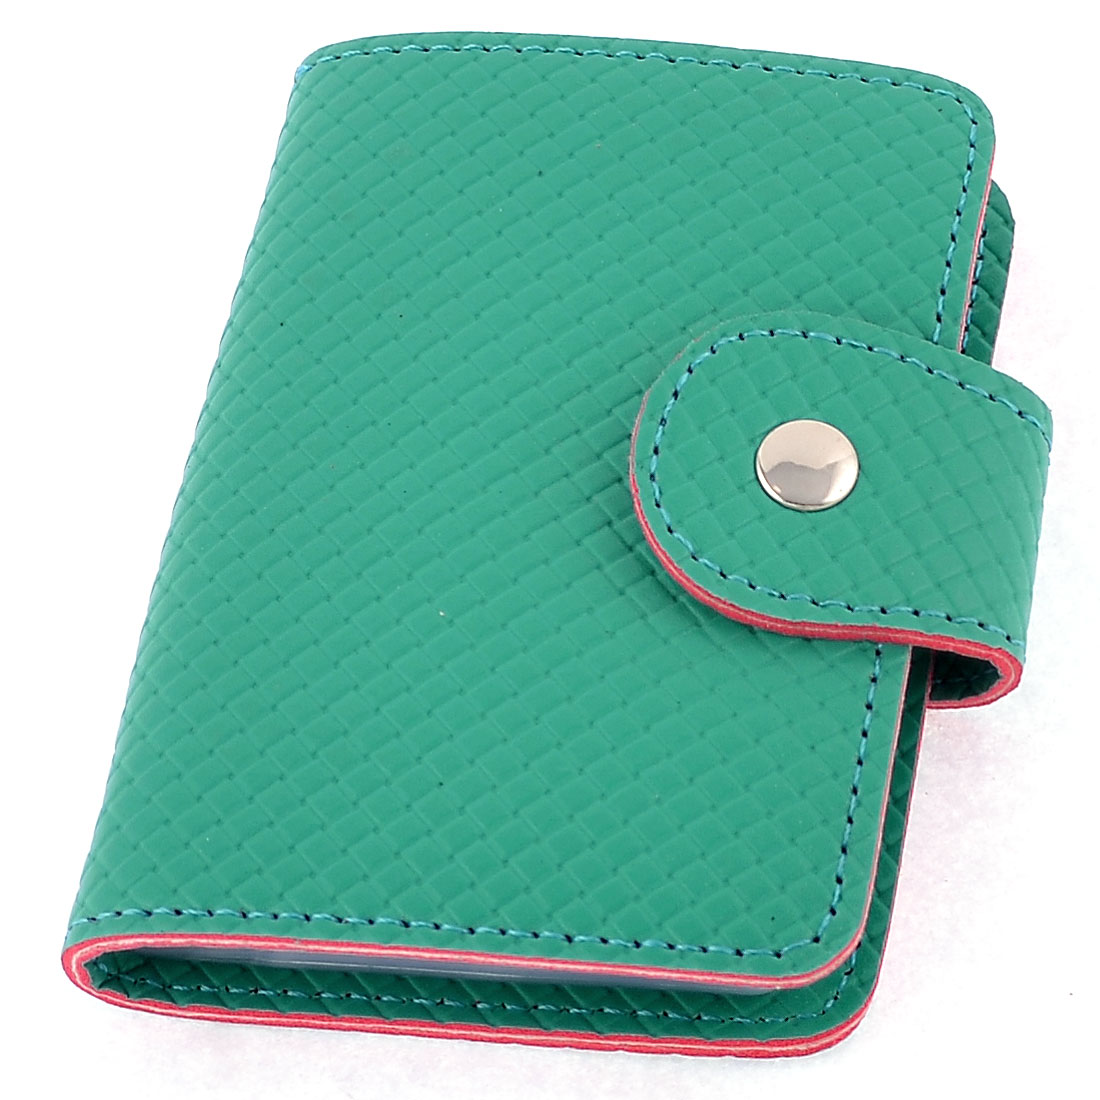 Faux Leather Woven Printed 26 Pcs Capacity Bank Credit Card Holder Cyan